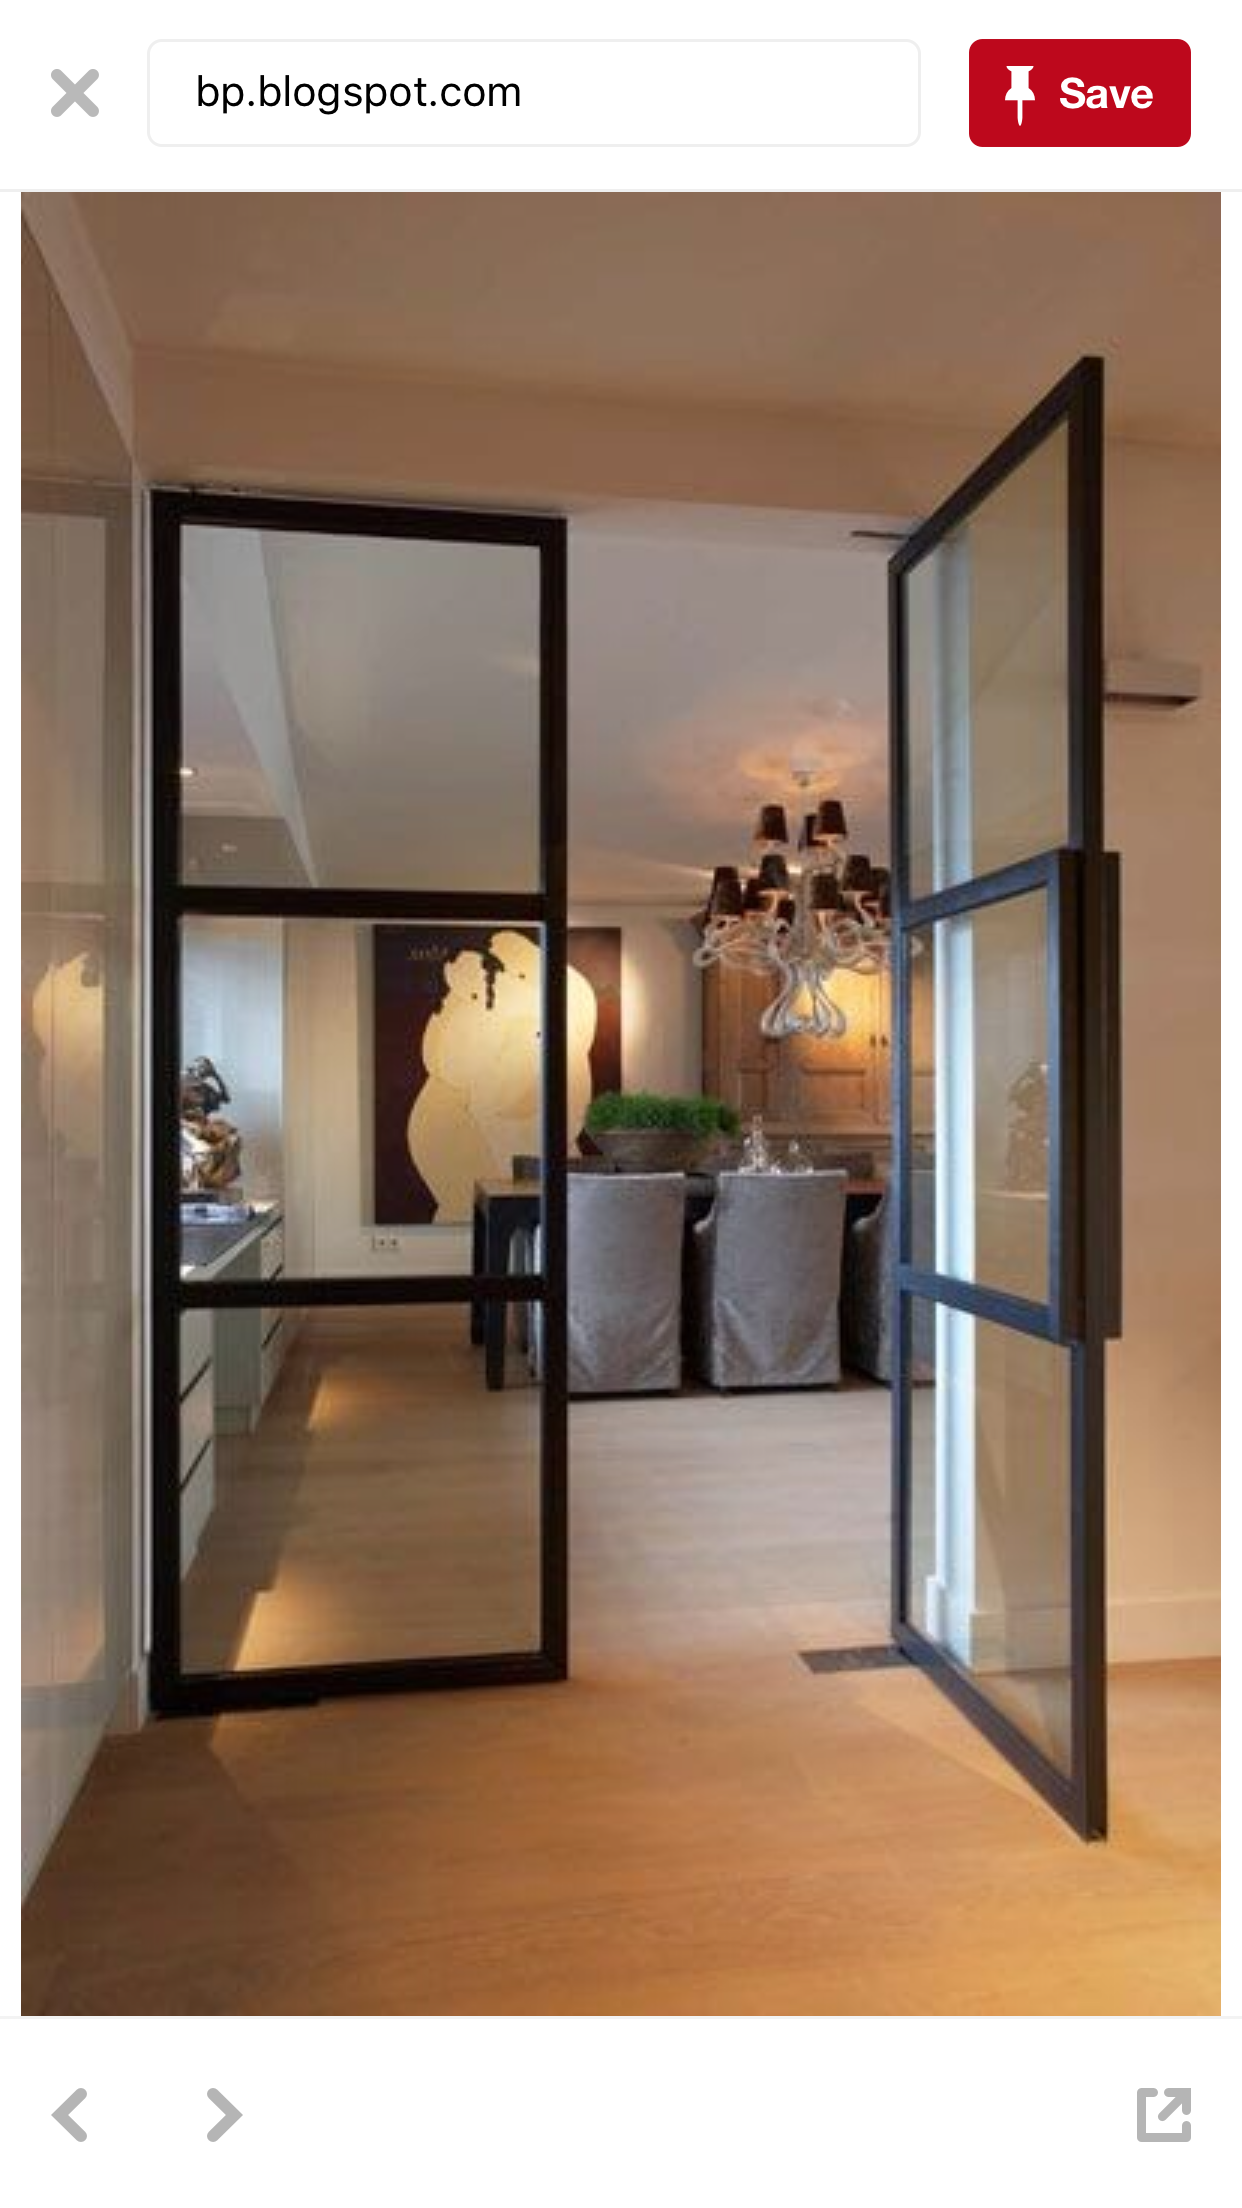 Pin By Nikita Cchao On Home Decor In 2019 Glass French Doors #eingangsbereichhausinnen